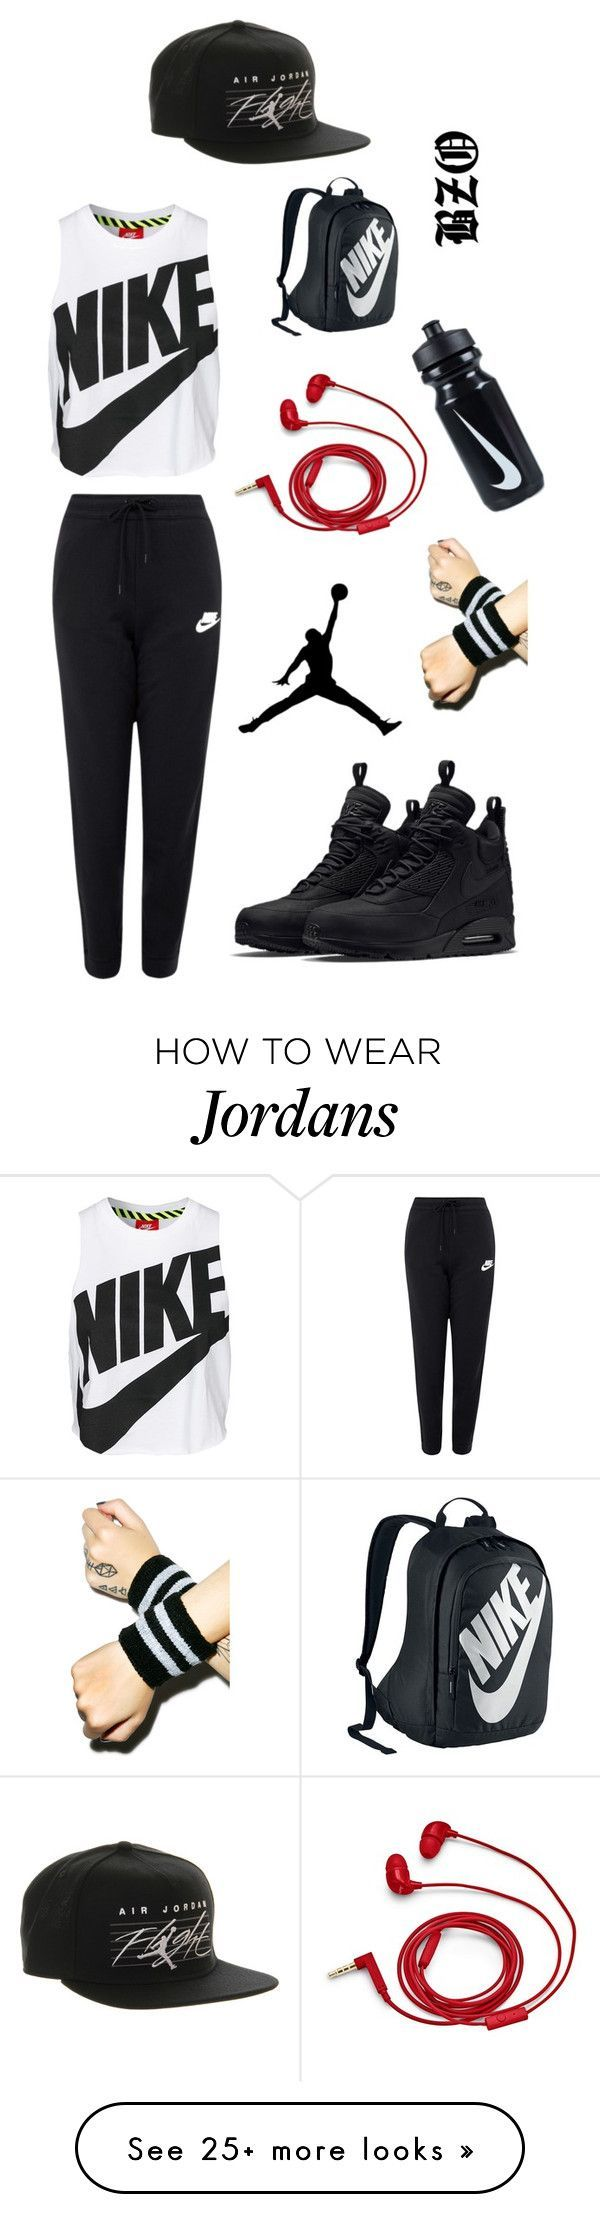 """A Nike Day"" by itzbrizo on Polyvore featuring NIKE, FOSSIL, women's clothing, women, female, woman, misses, juniors, black and red"